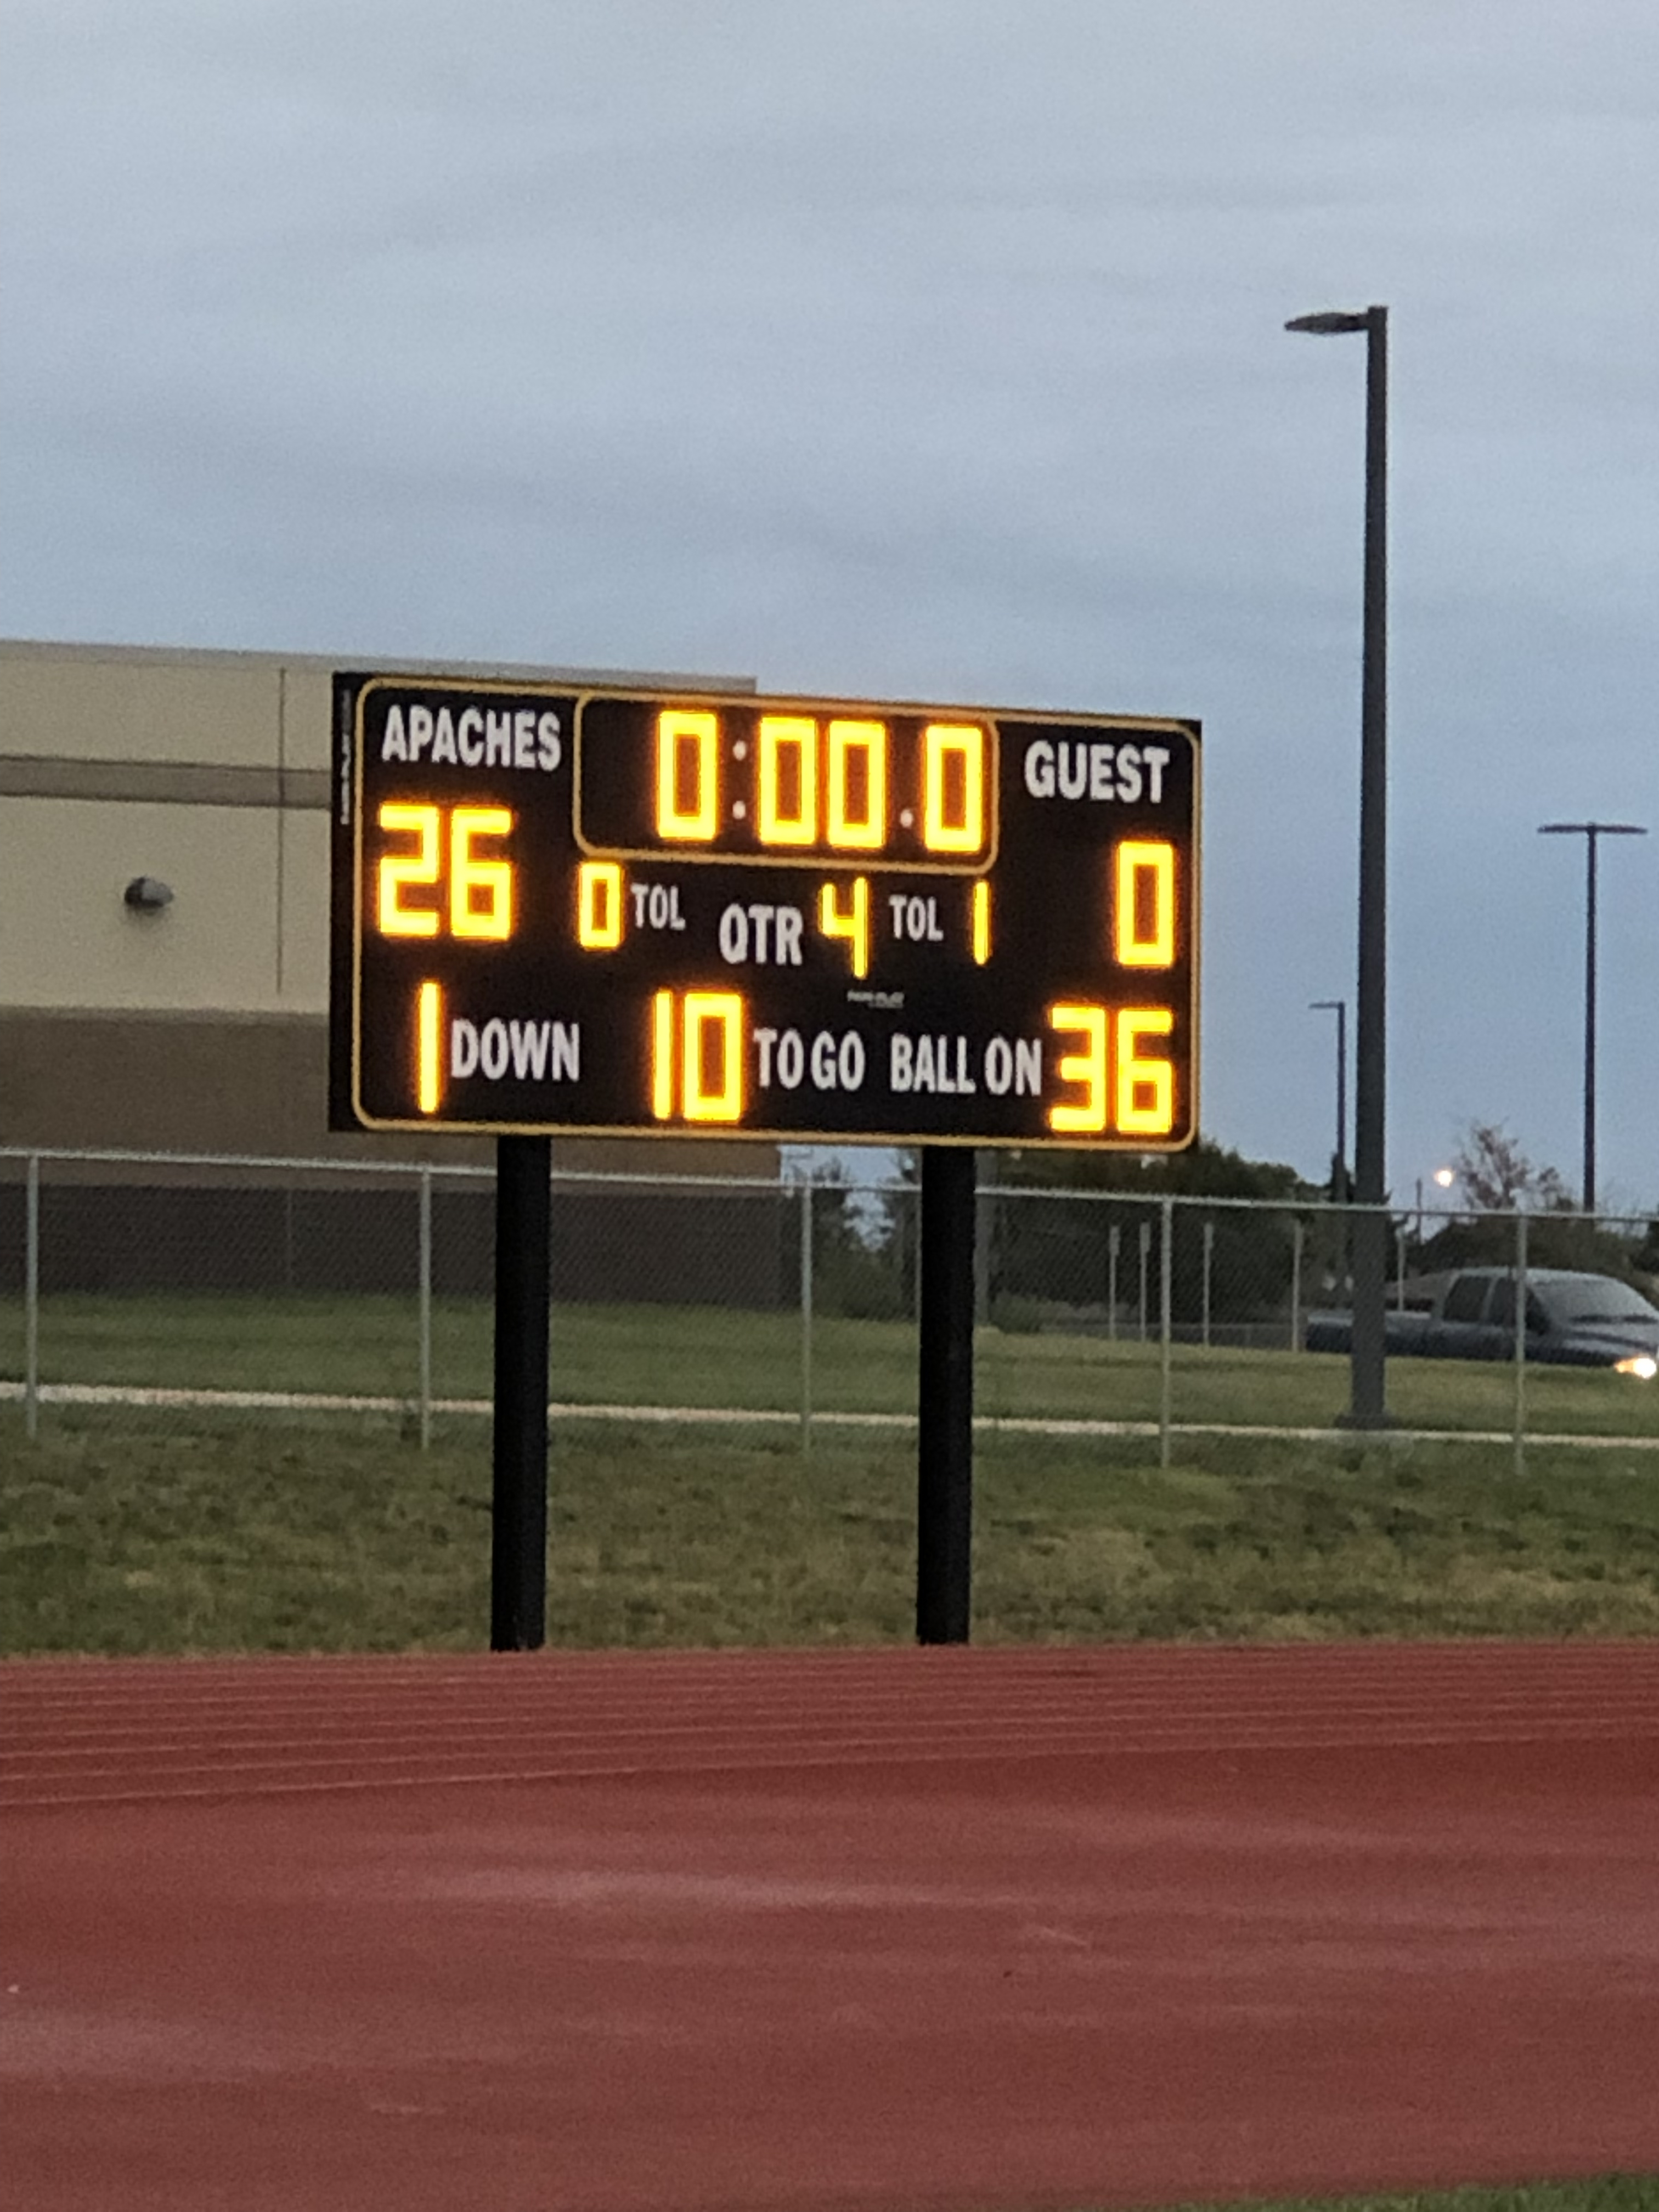 SRMS 8th beats Great Bend 26-0 7 th grade falls to GB 6-18. Go Apaches!!!